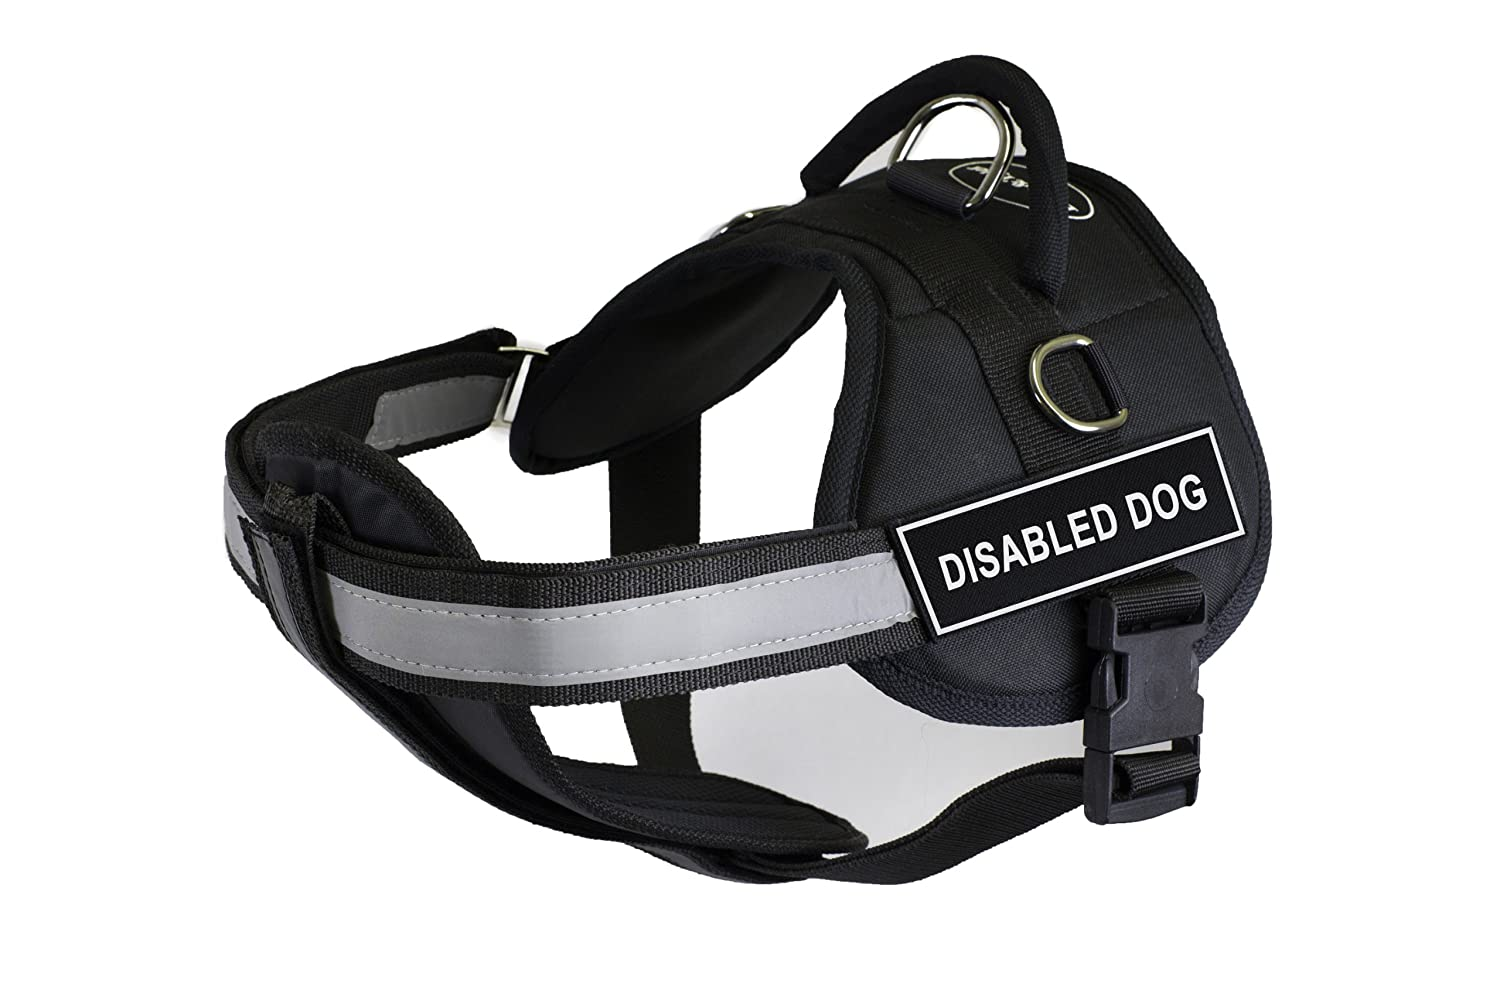 Dean & Tyler 25-Inch to 34-Inch Pet Harness with Padded Reflective Chest Straps, Small, Disabled Dog, Black